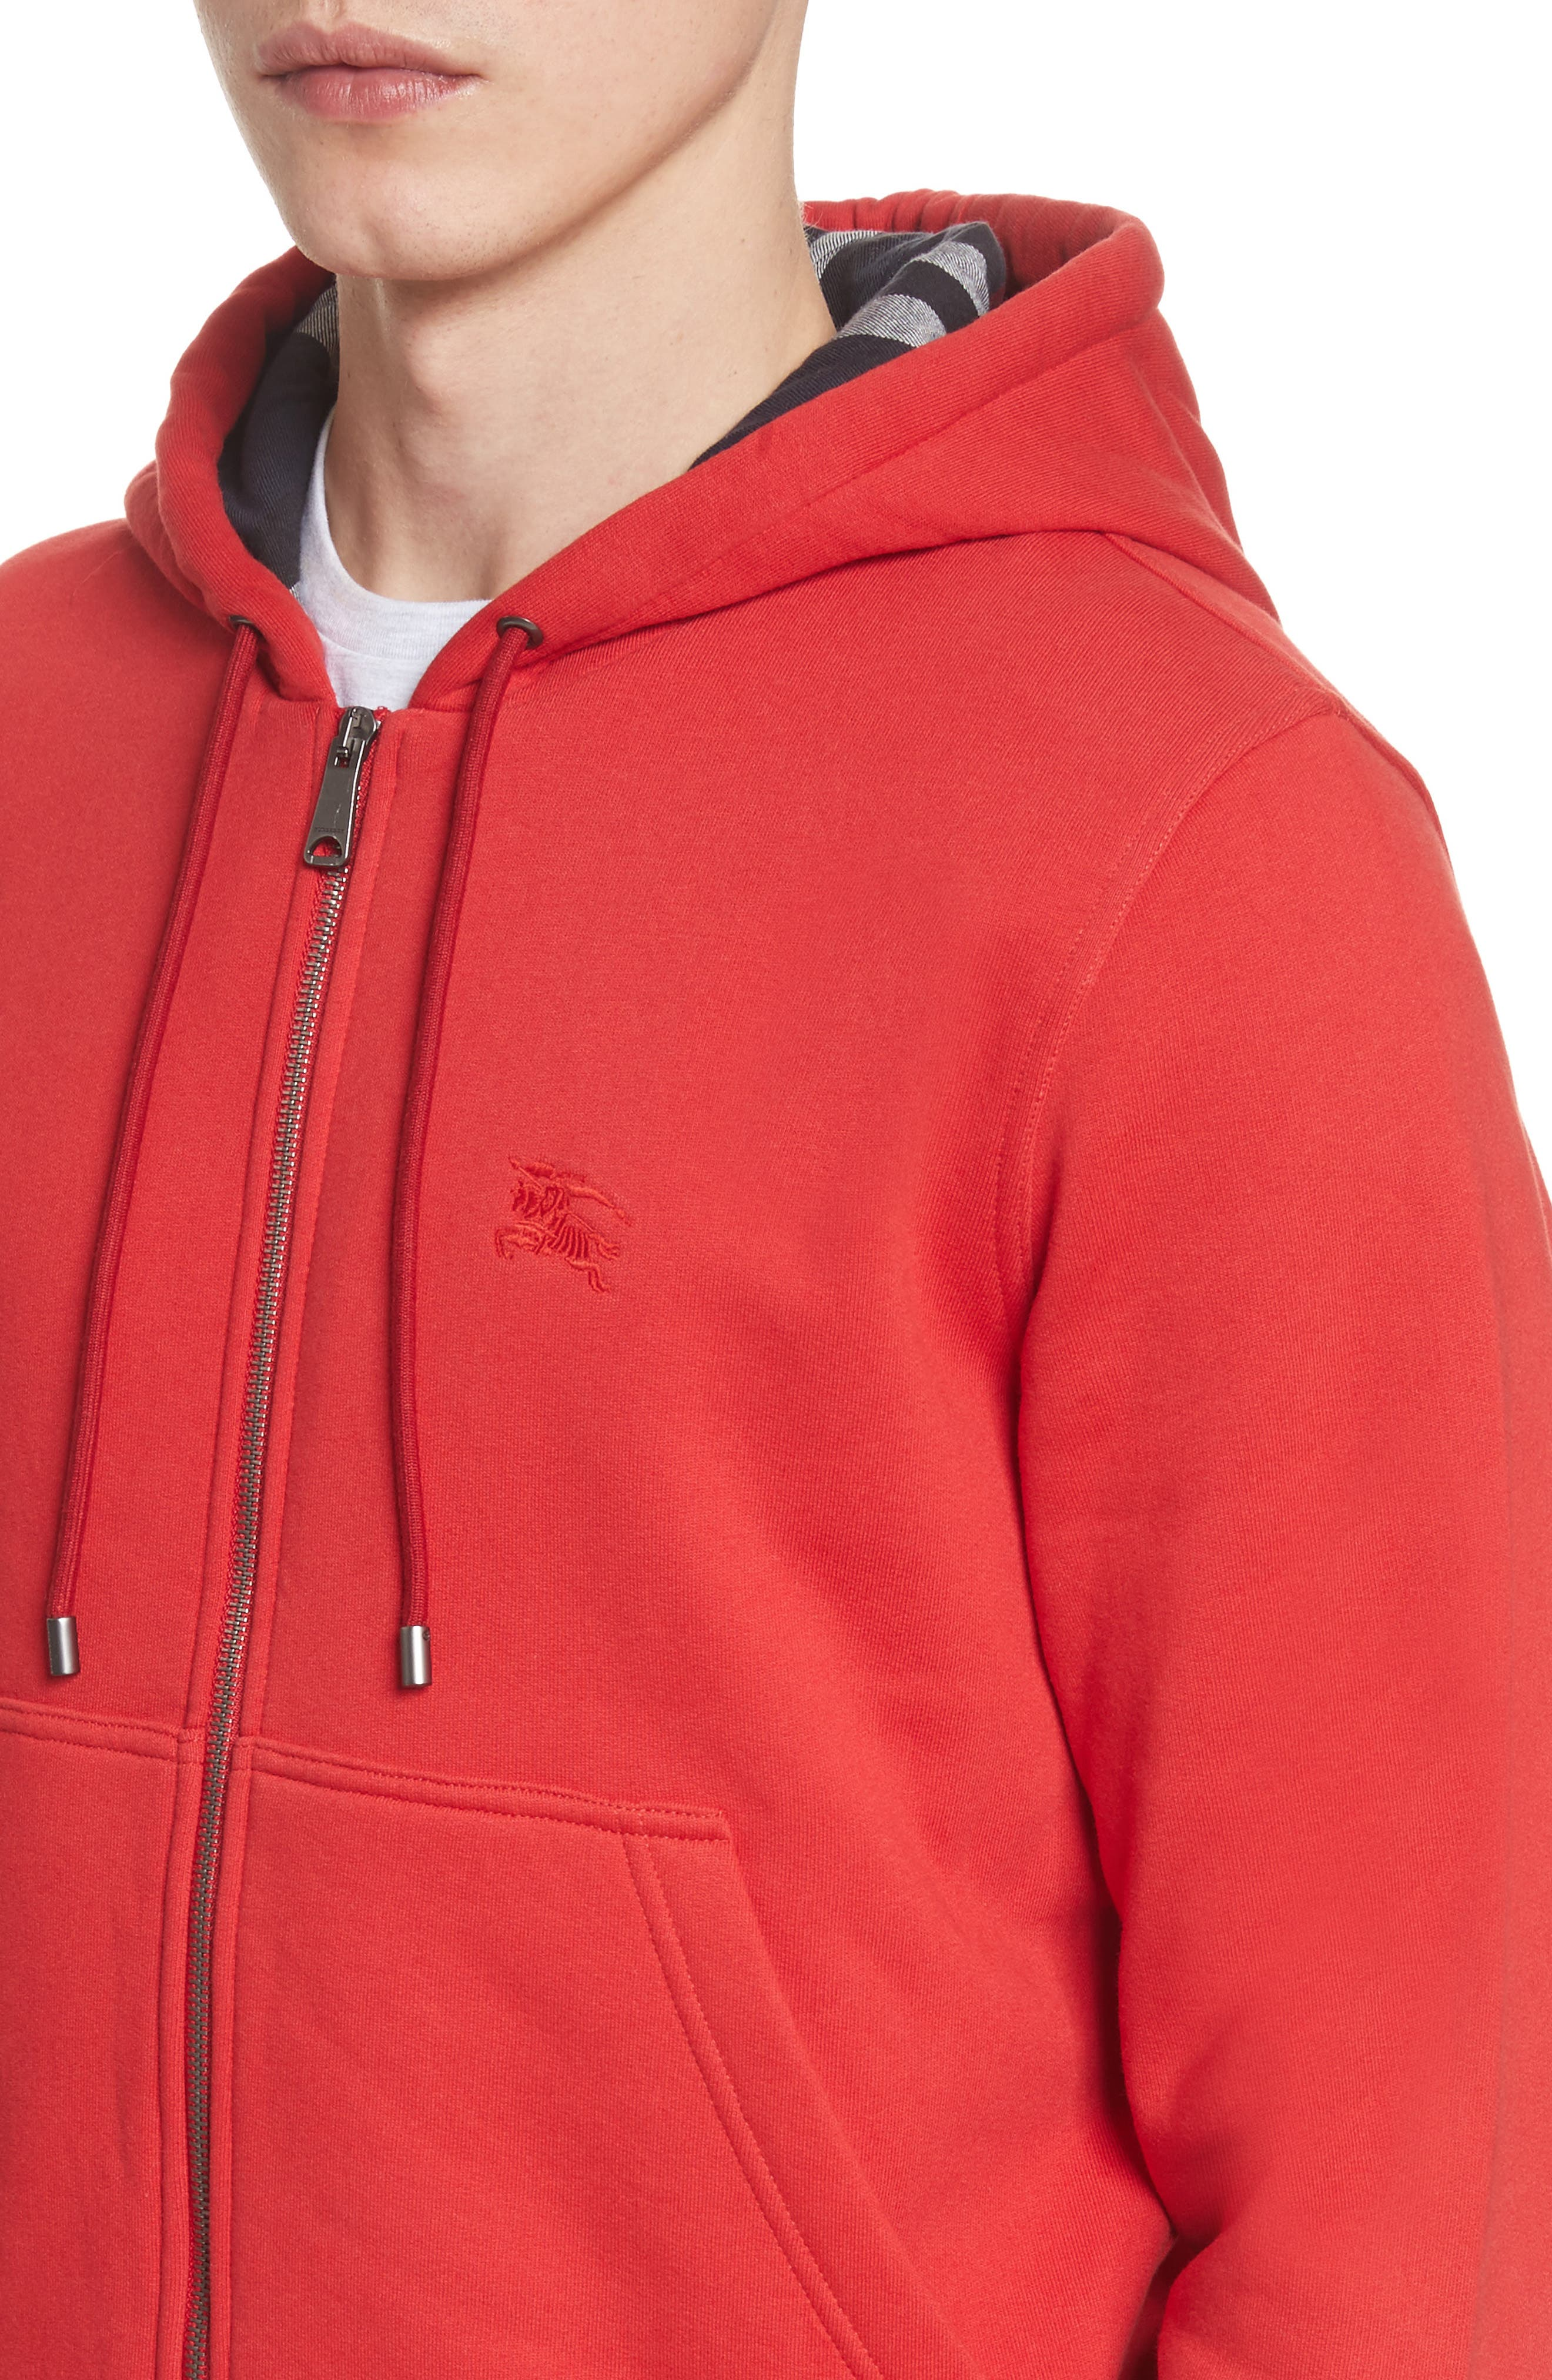 Fordson Fleece Hoodie,                             Alternate thumbnail 4, color,                             Military Red